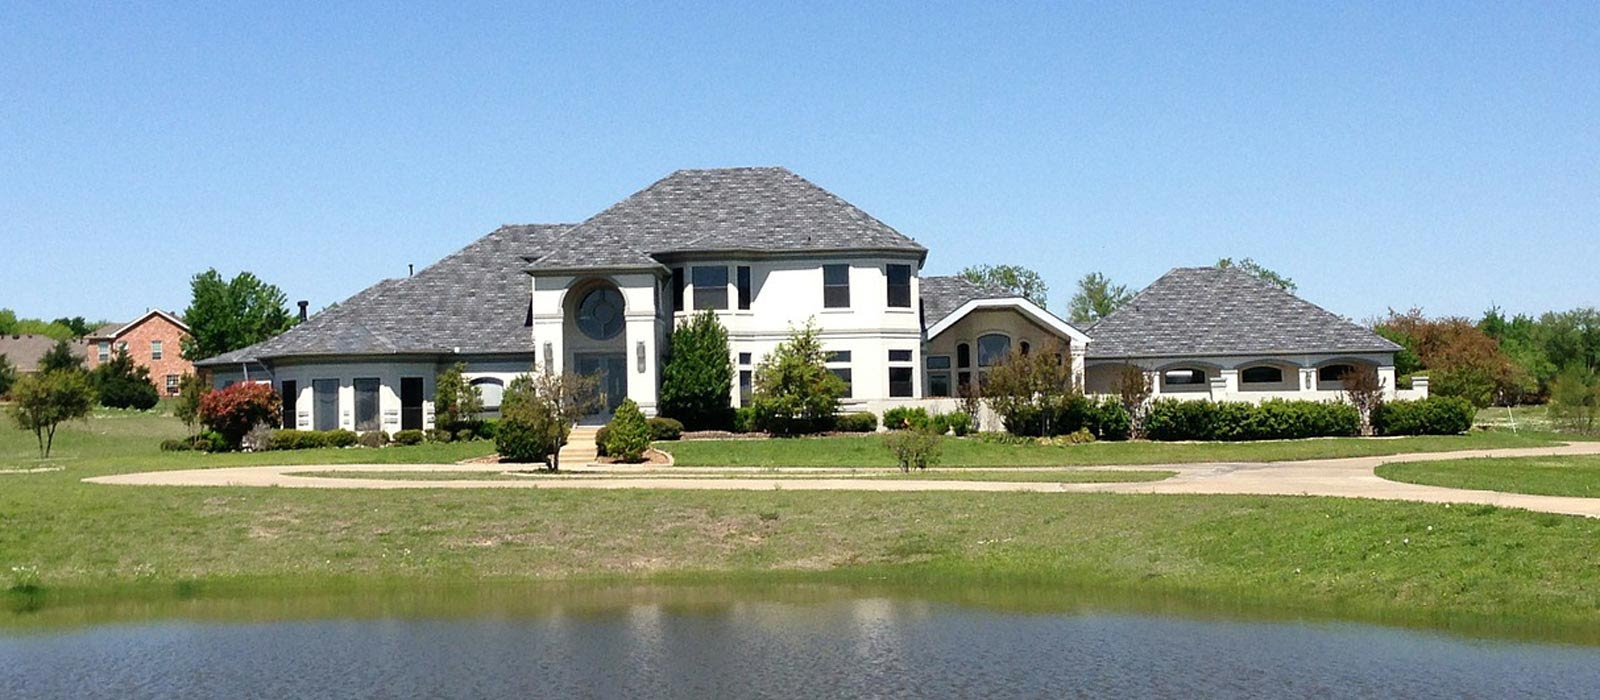 Texas Home Insurance Free Online Quotes